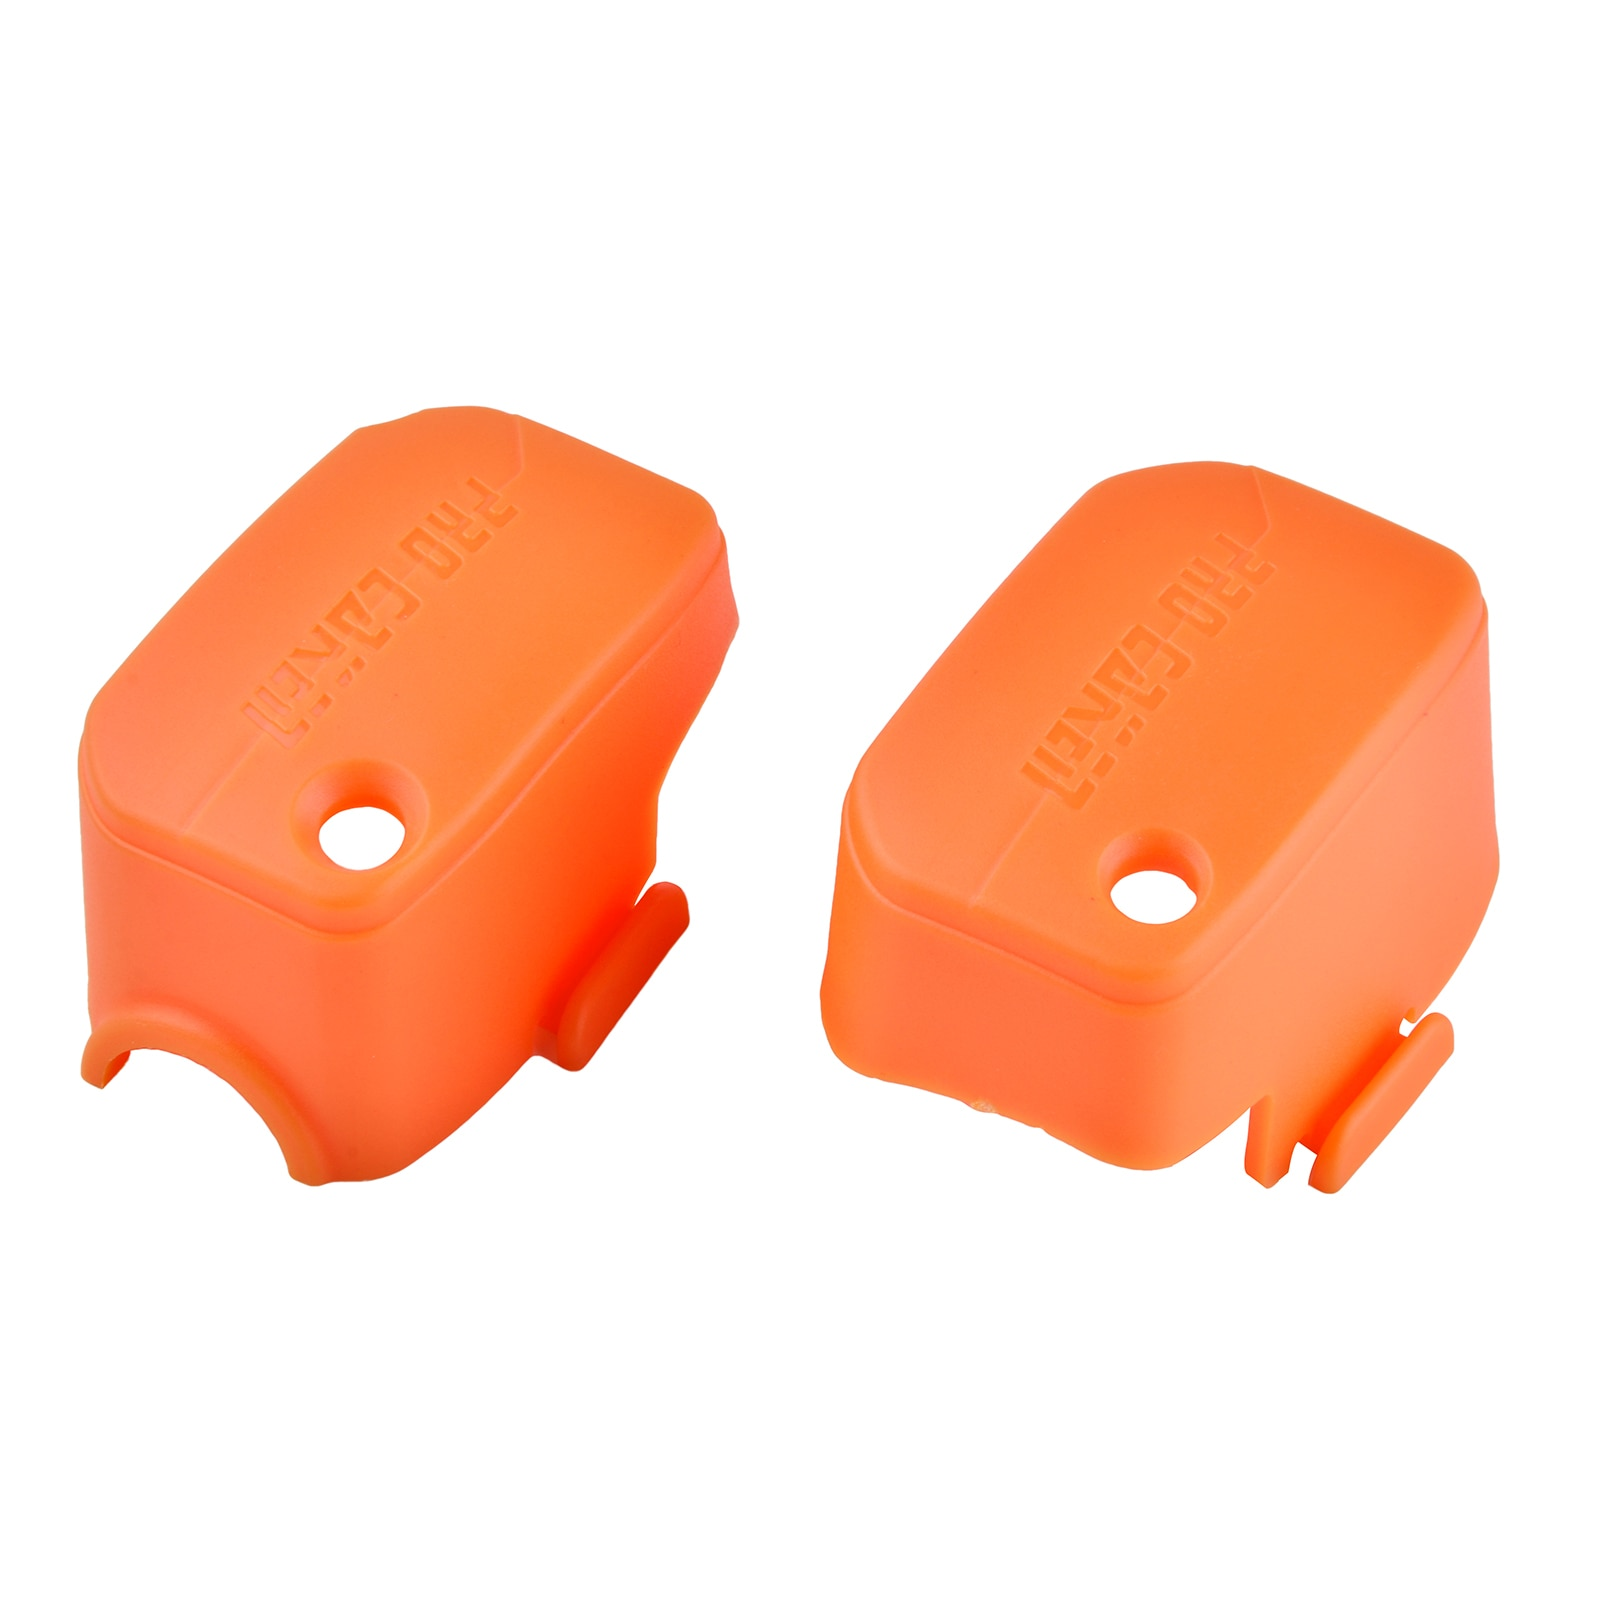 Motorcycle Plastic Master Cylinder Cover For KTM 125 150 200 250 300 350 400 450 500 530 SX EXC SXF XC XCF XCW SMR